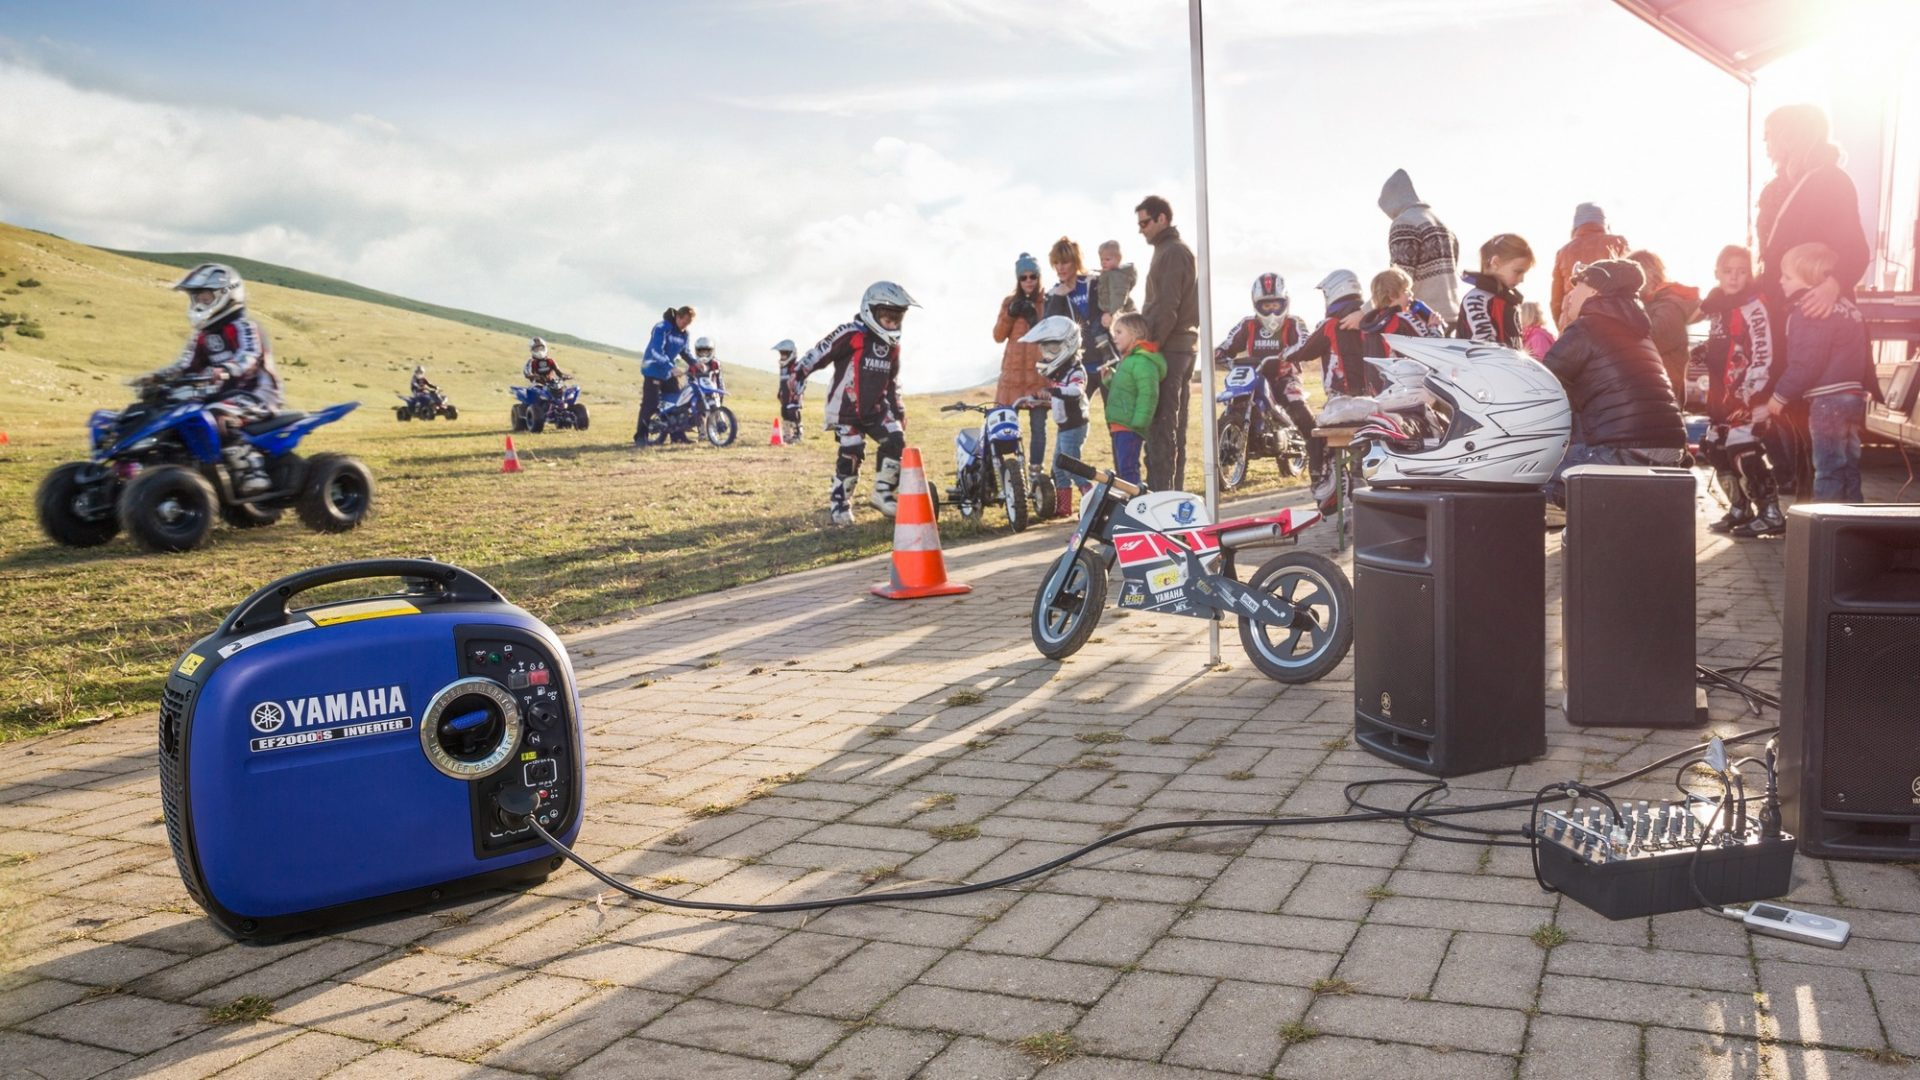 Yamaha EF2000iS portable inverter generator at a motorcross & ATV event